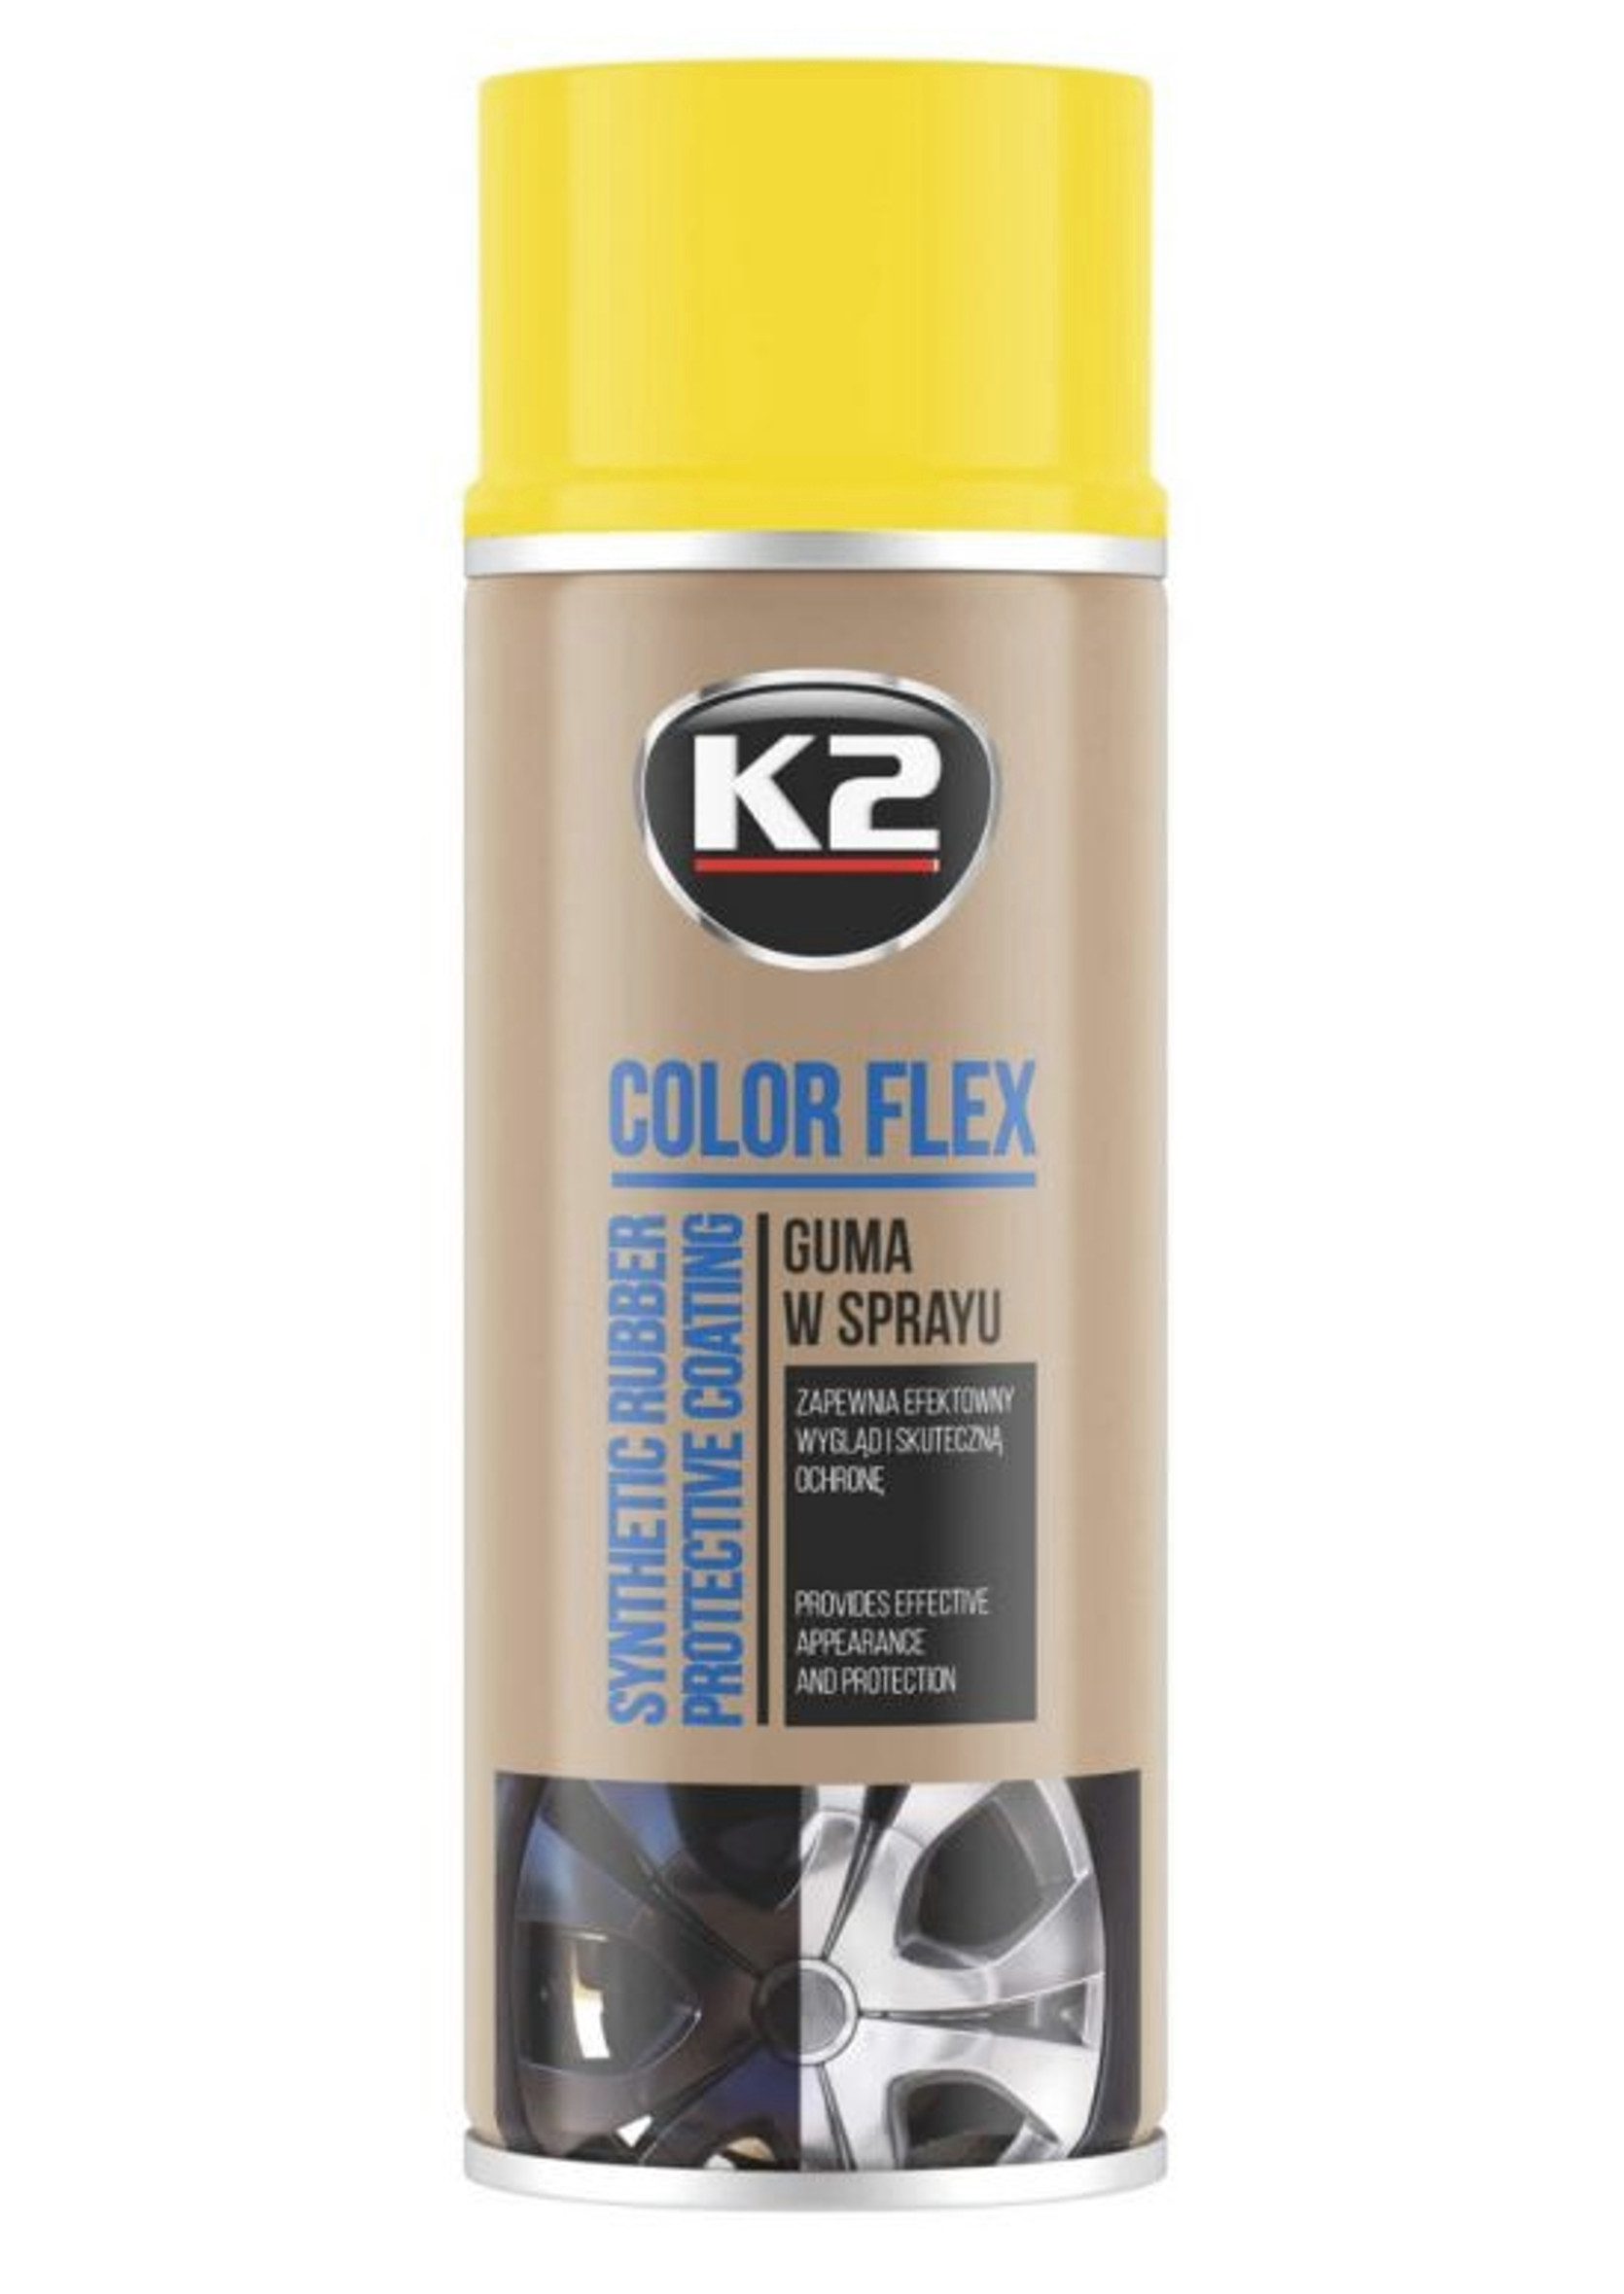 K2 Color Flex Żółty 400ml Guma w Sprayu